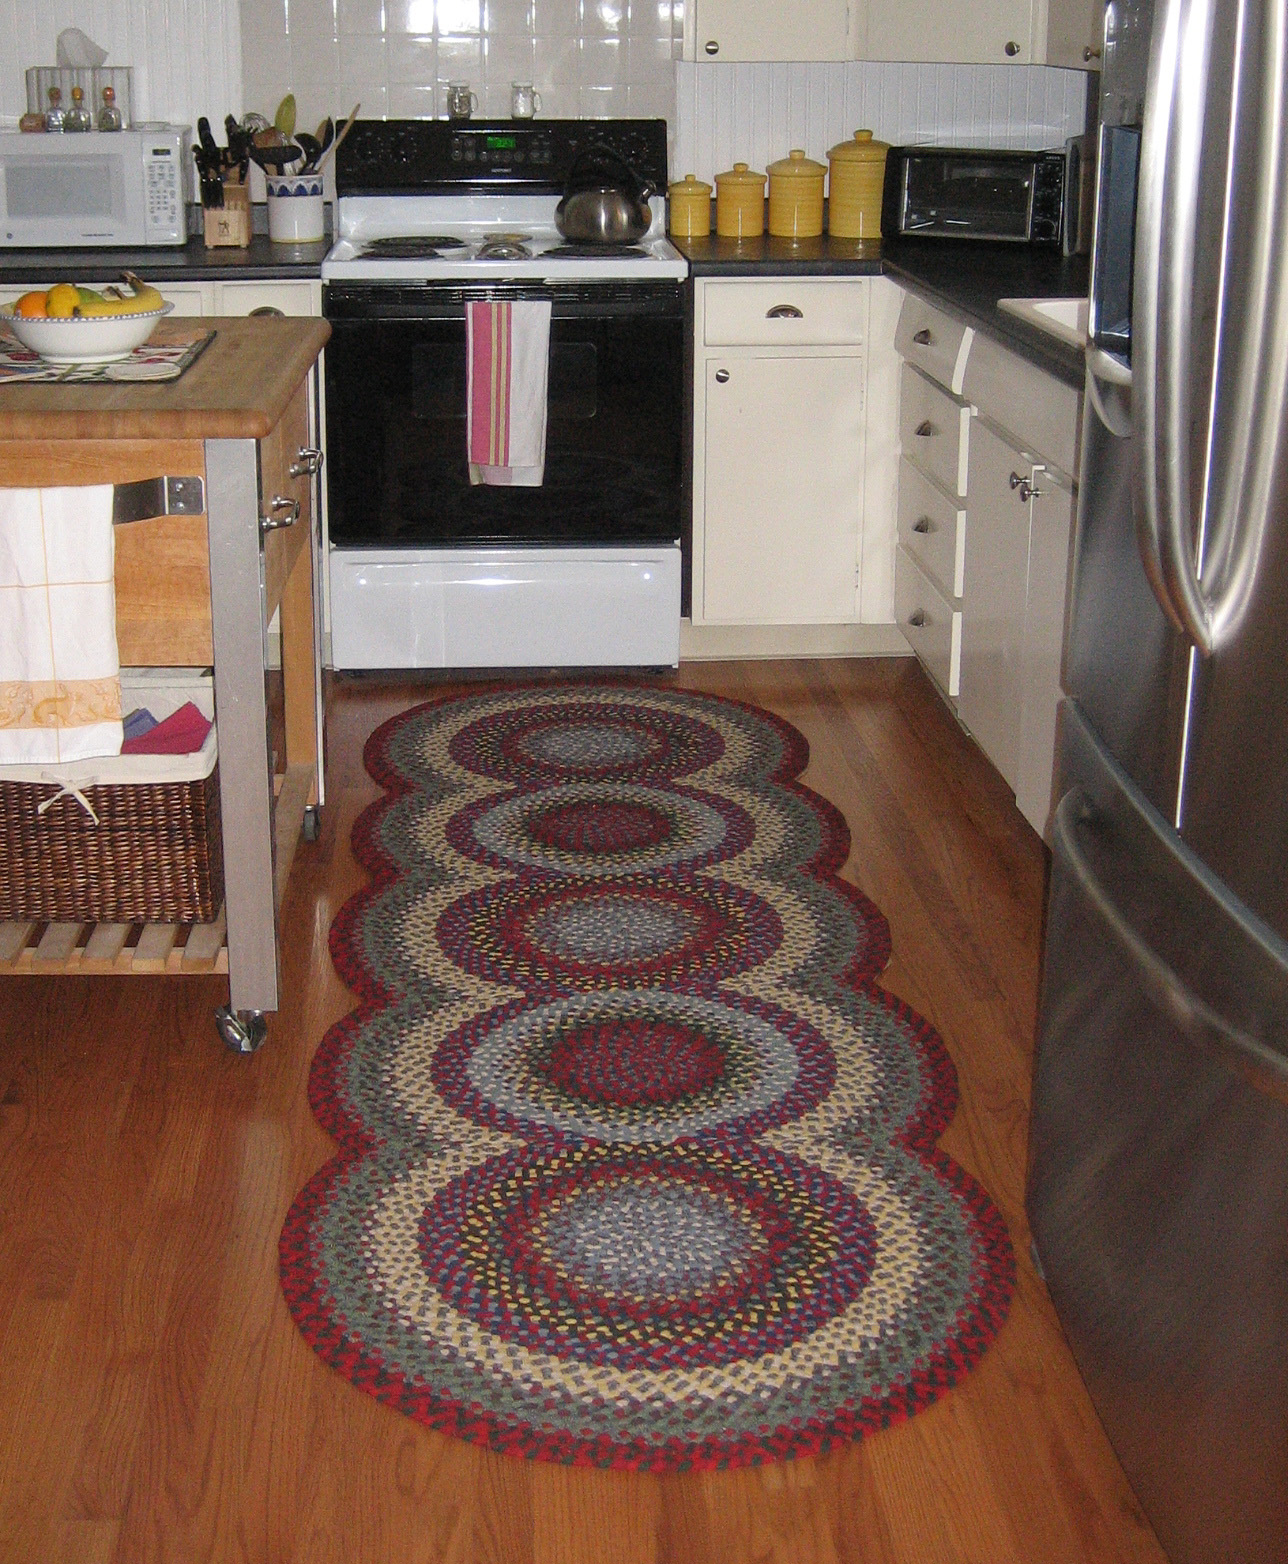 stunning picture for choosing the perfect kitchen rugs WLBZIGE